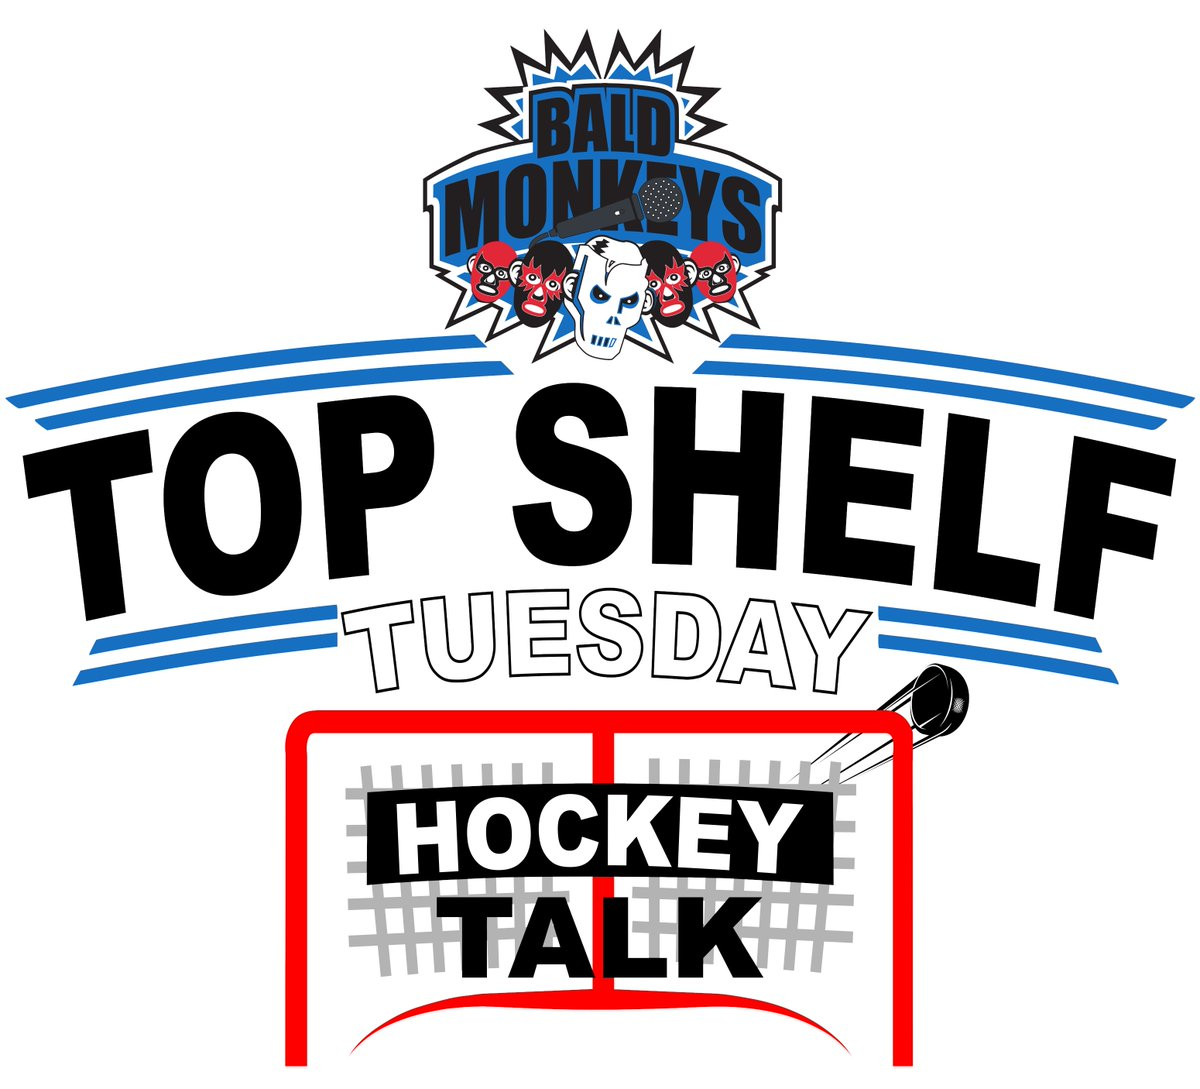 🚨🏒TOP SHELF TUESDAY🏒🚨  Tuesday Night is HOCKEY night on our @Twitch!  How did my week 1 go? What's been going on in hockey? Will the #NJDevils beat the Rangers tonight? Join me at 10pm EST   #Hockey #NHLIsBack #FantasyHockey #Twitch #NHL #Tuesday